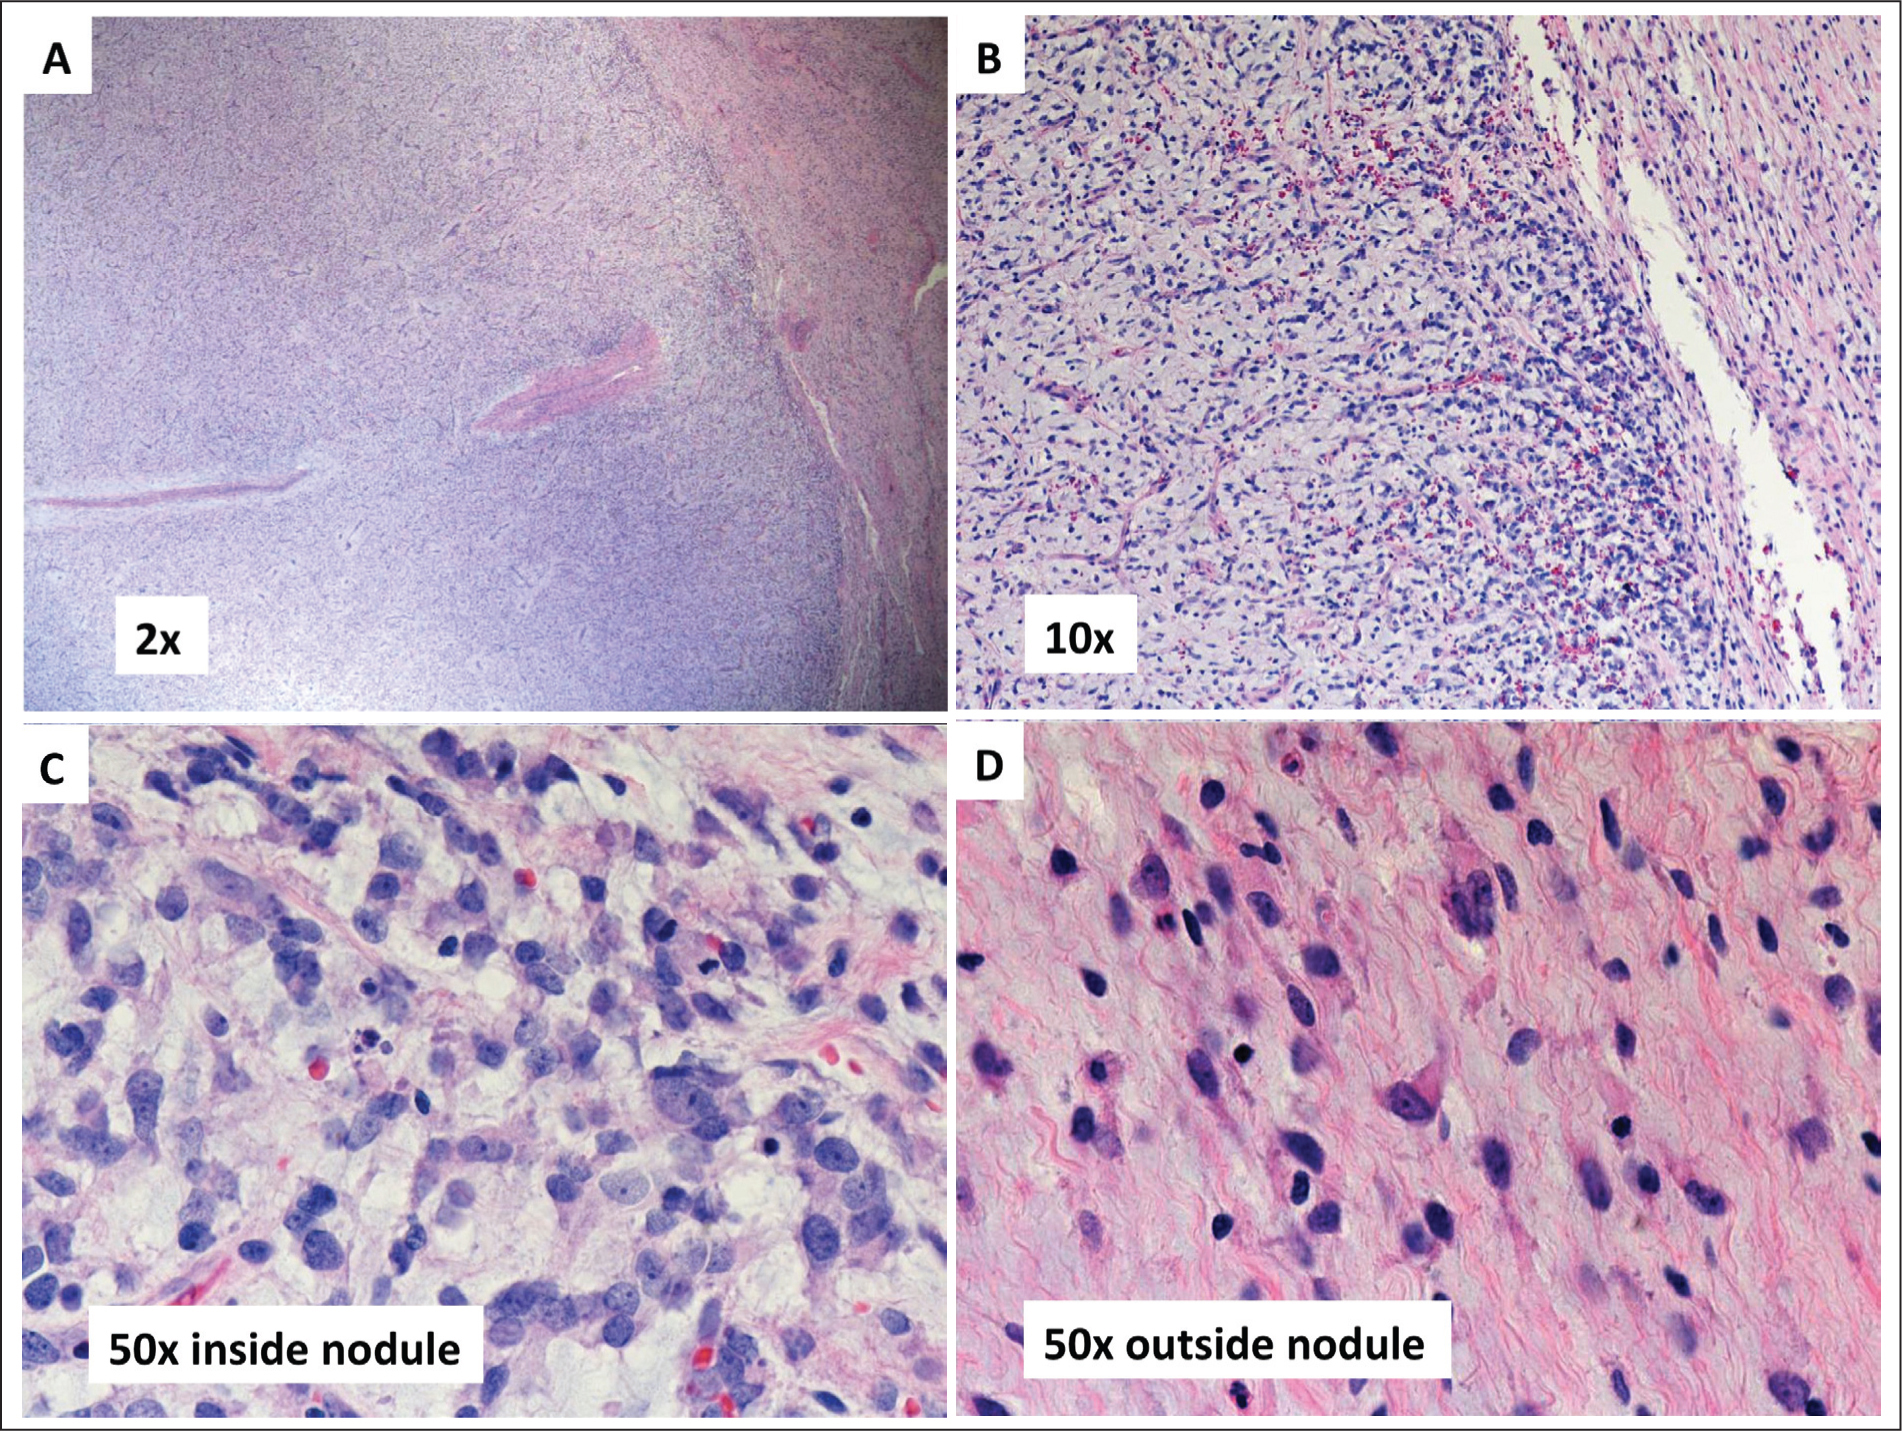 (A) A well-circumscribed, nodular proliferation with arborizing capillaries is seen within the myxoid neoplasm. There is increased cellularity within the nodule compared to the surrounding tumor (hematoxylin–eosin stain). (B) Condensation of neoplastic cells at the periphery of the nodule (hematoxylin–eosin stain). (C) The neoplastic cells within the nodule show moderate cellular atypia (hematoxylin–eosin stain). (D) Cells on the outside of the nodule appear stellate-shaped (hematoxylin–eosin stain). Most are bland, but some are binucleated with mild to moderate atypia.